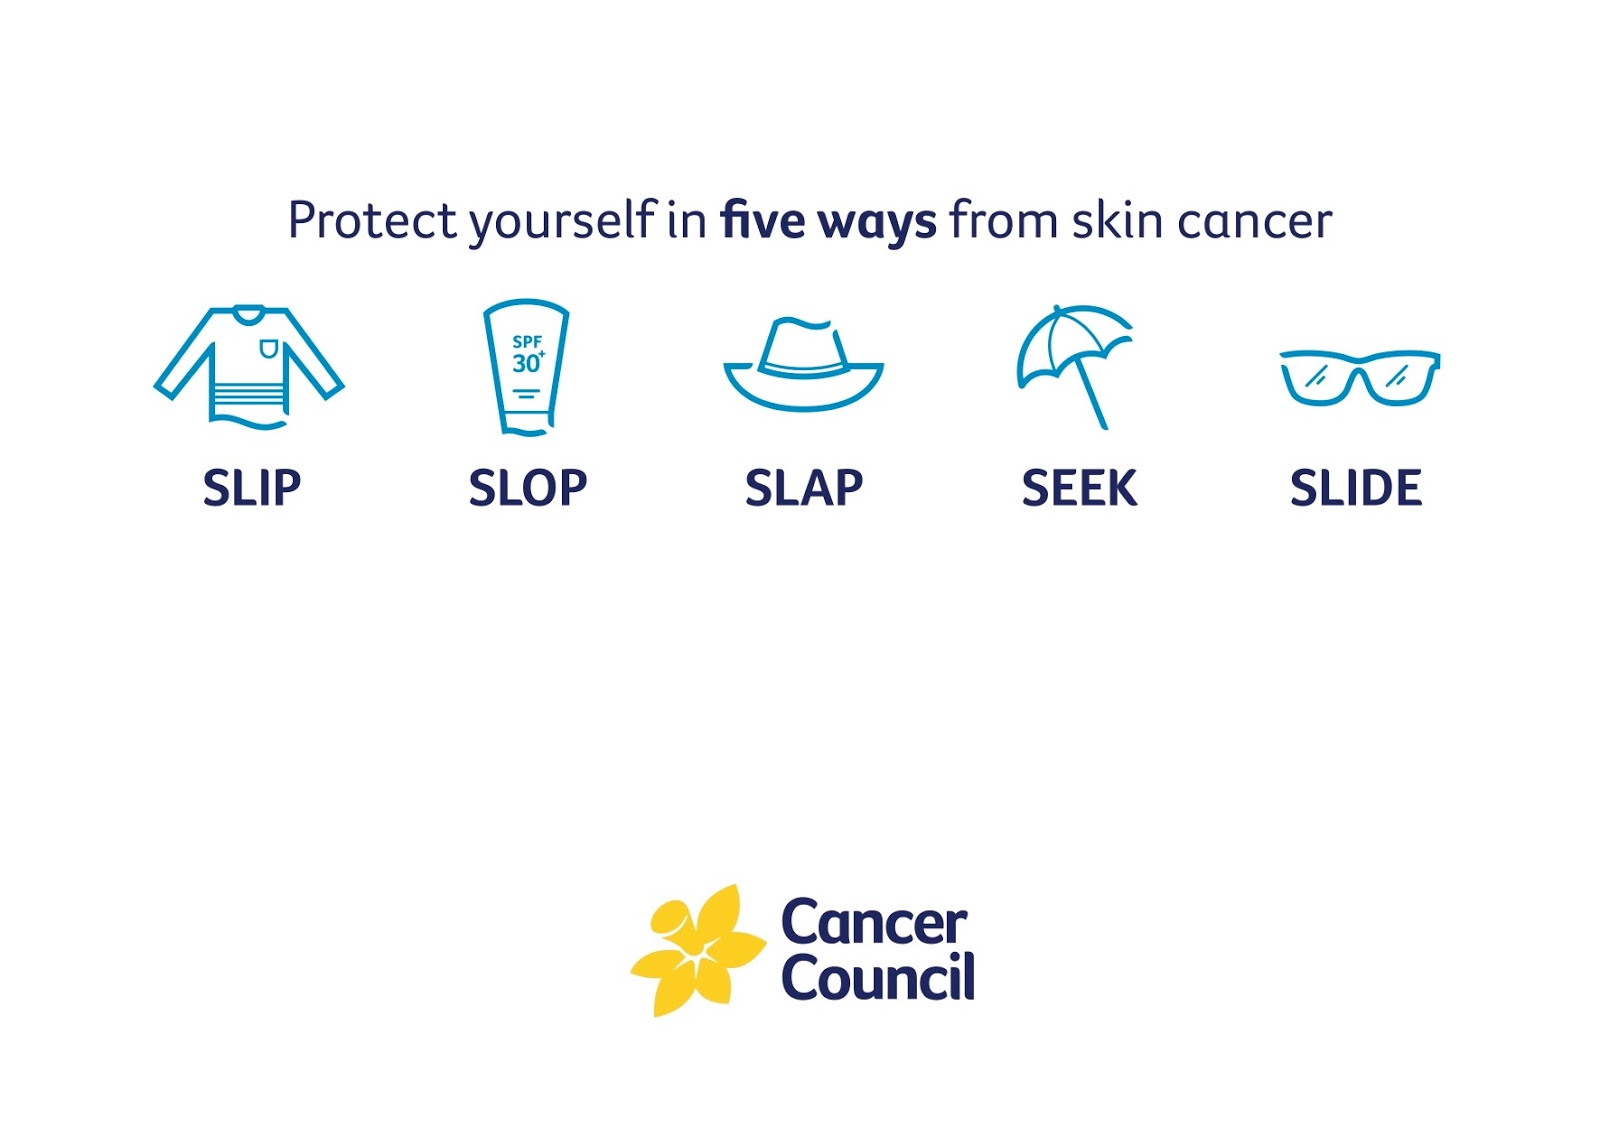 five ways to protect yourself from skin cancer